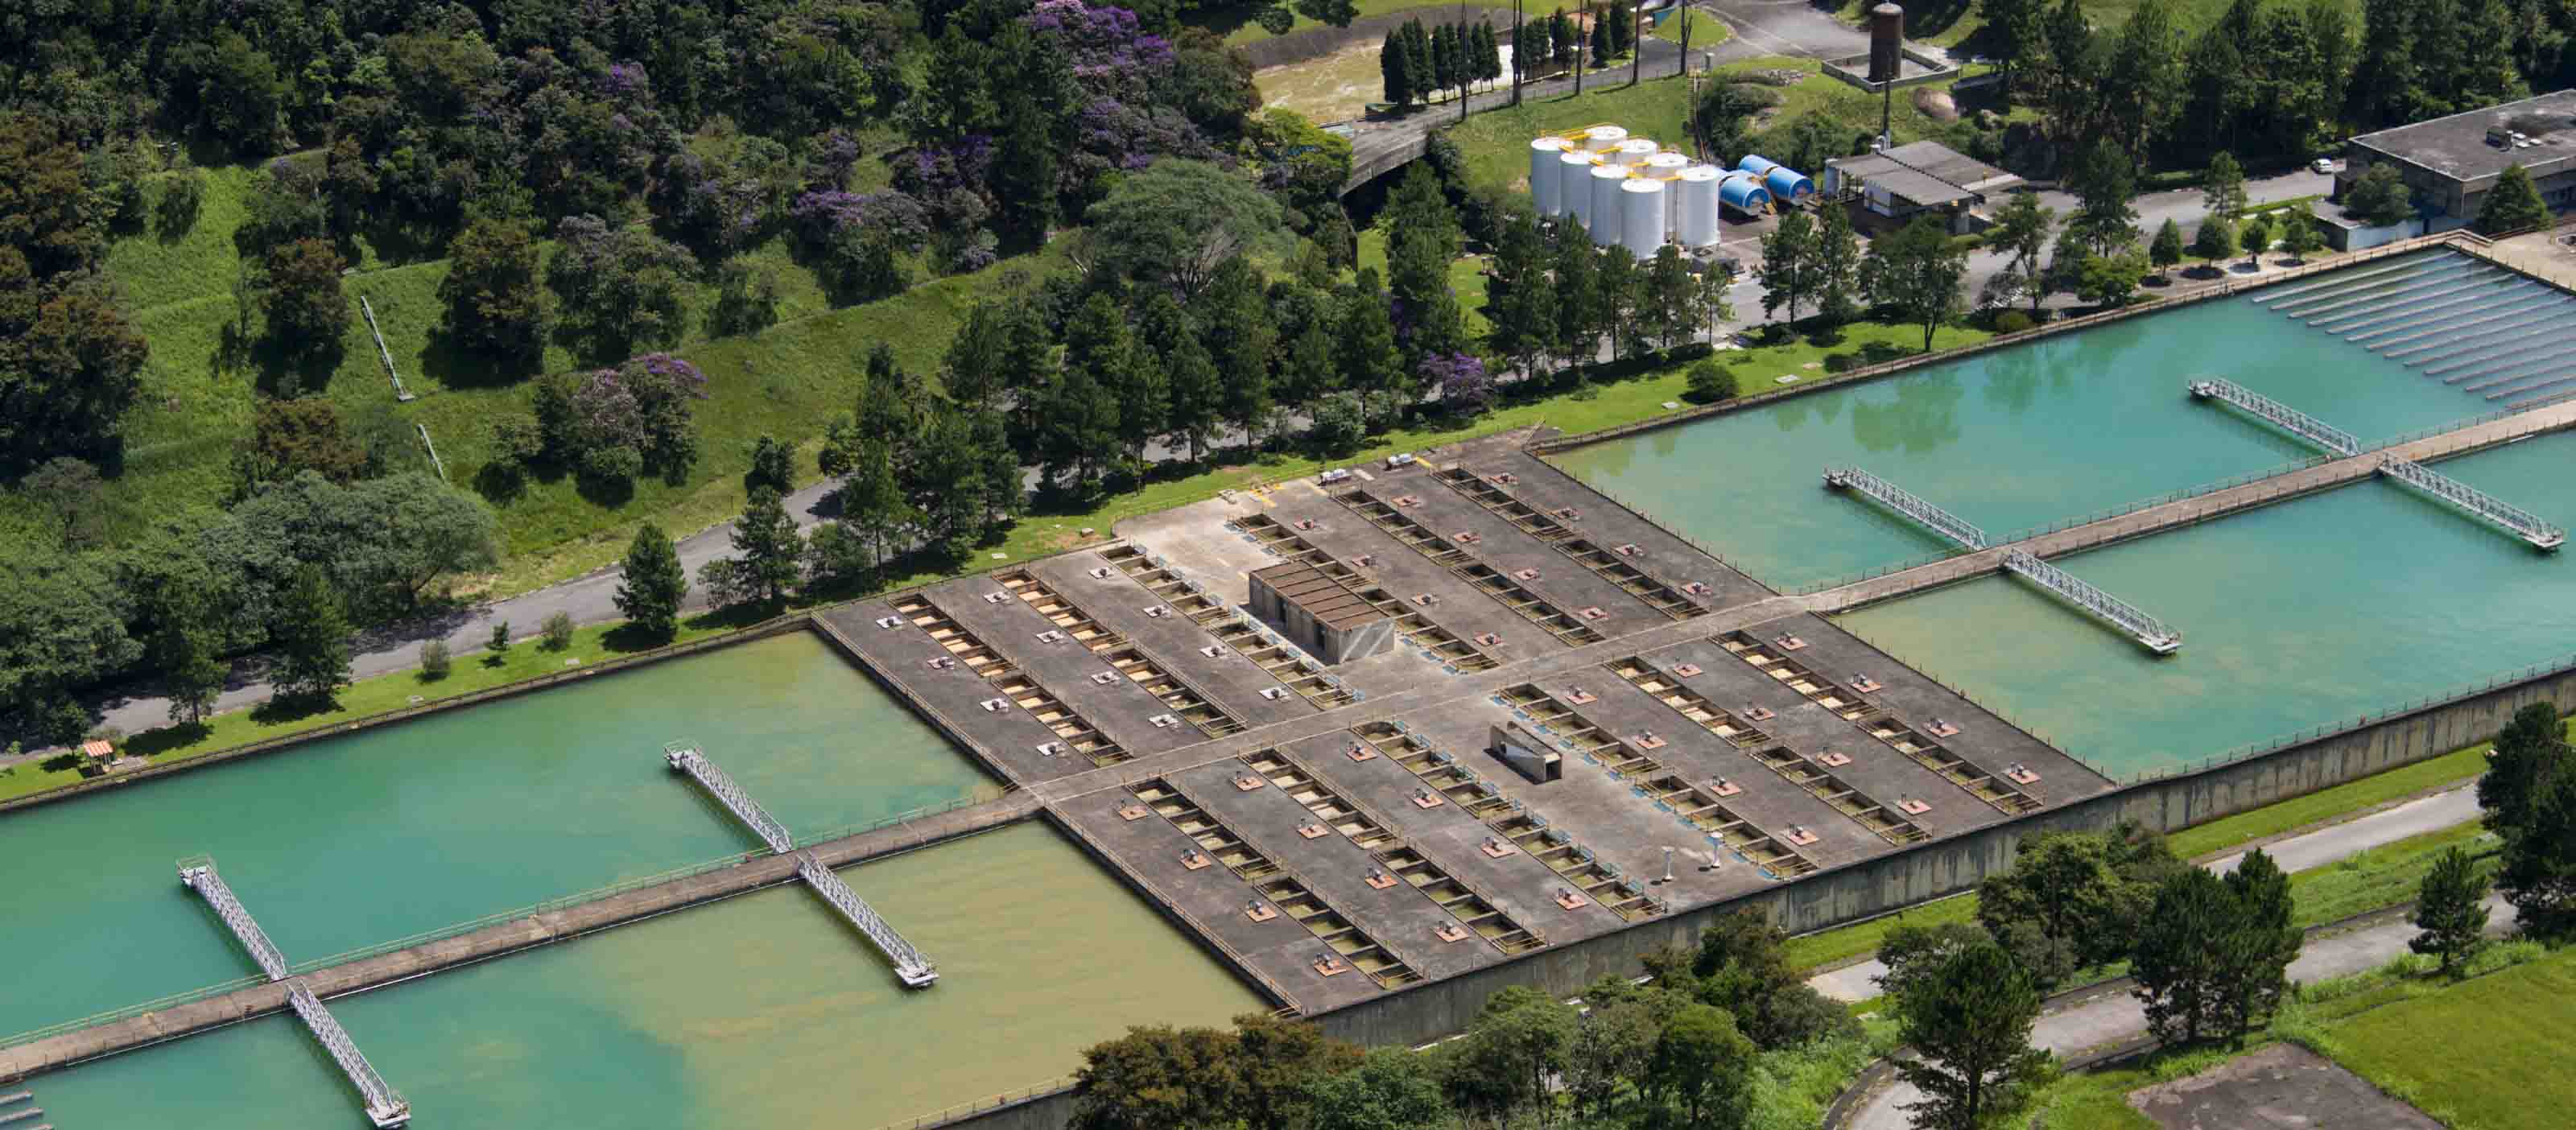 Water treatment facility in Brazil   GE Digital software helps Sabesp monitor water